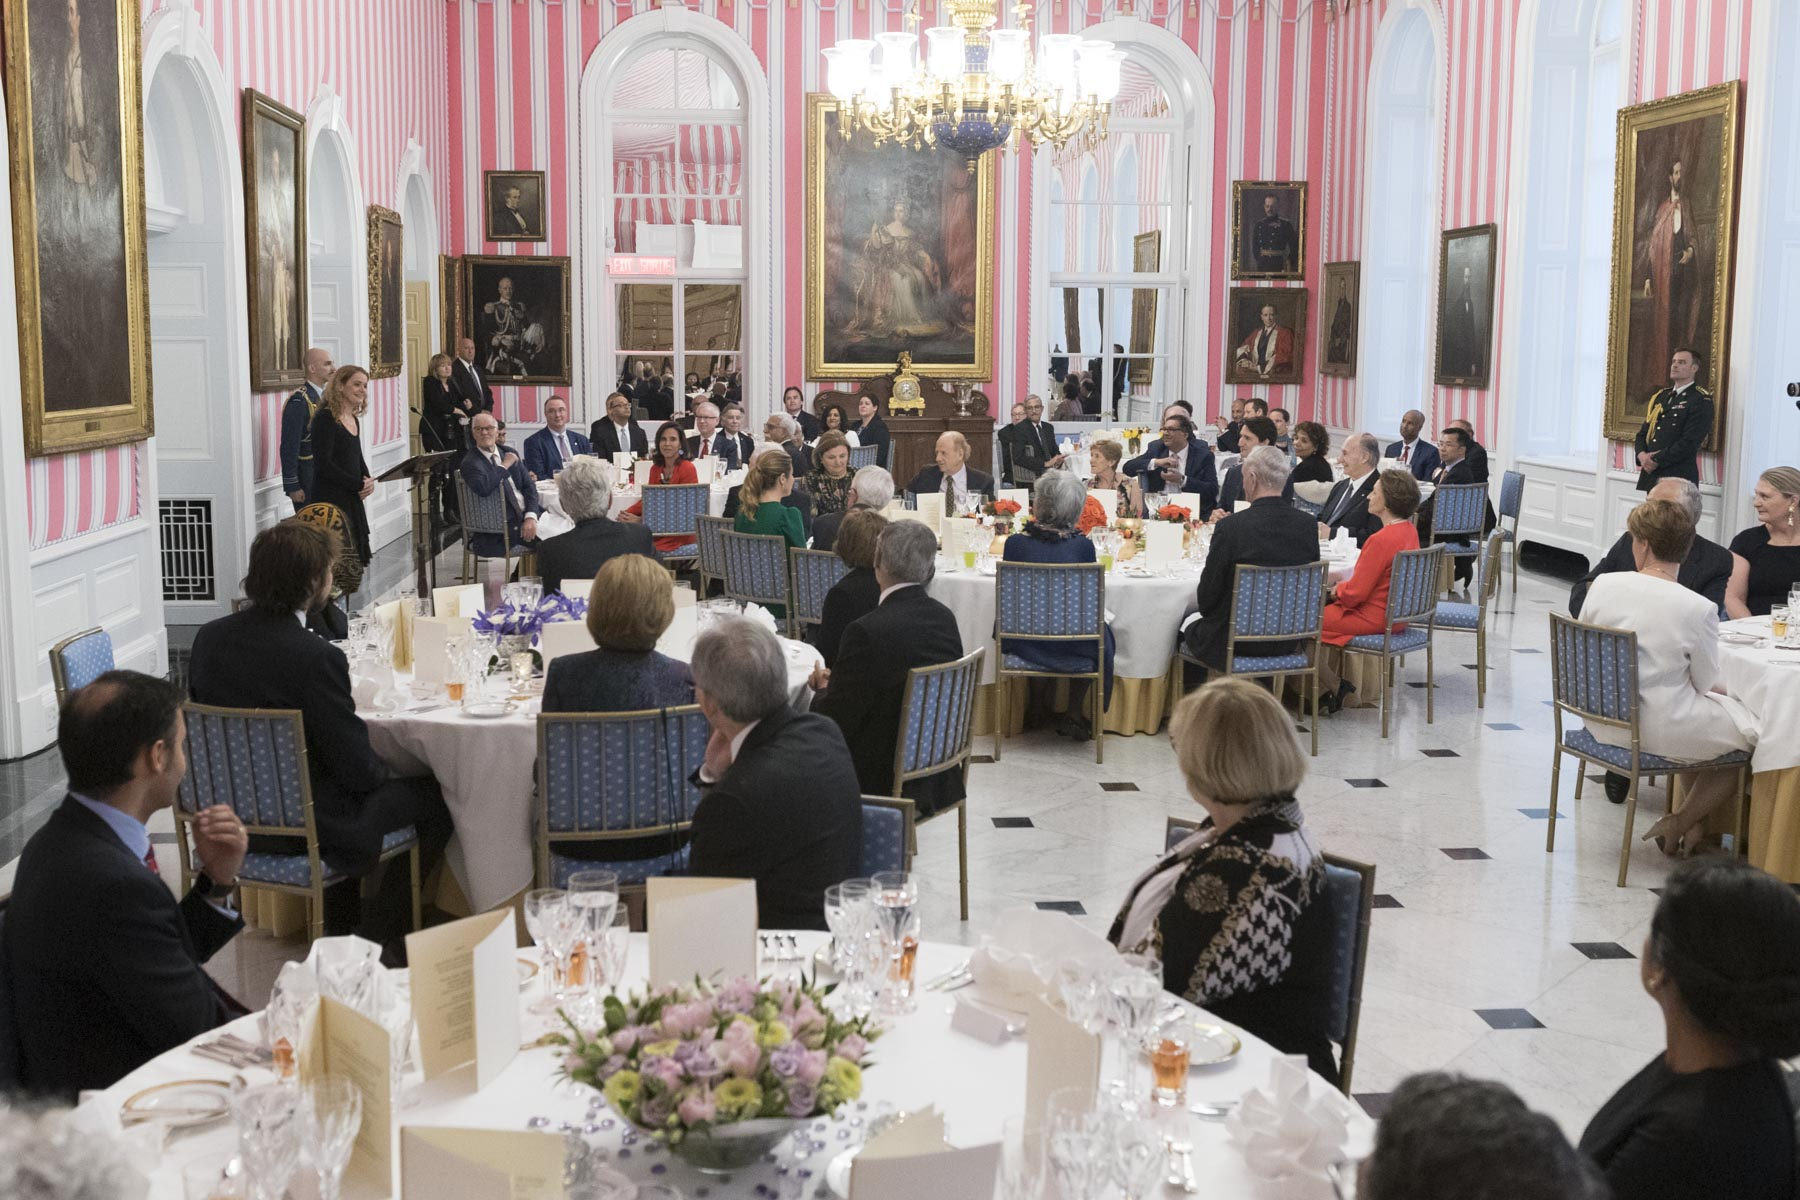 The Governor General hosted a dinner at Rideau Hall to mark the Diamond Jubilee of His Royal Highness the Aga Khan. A cross-section of Canadians were in attendance on this occasion.